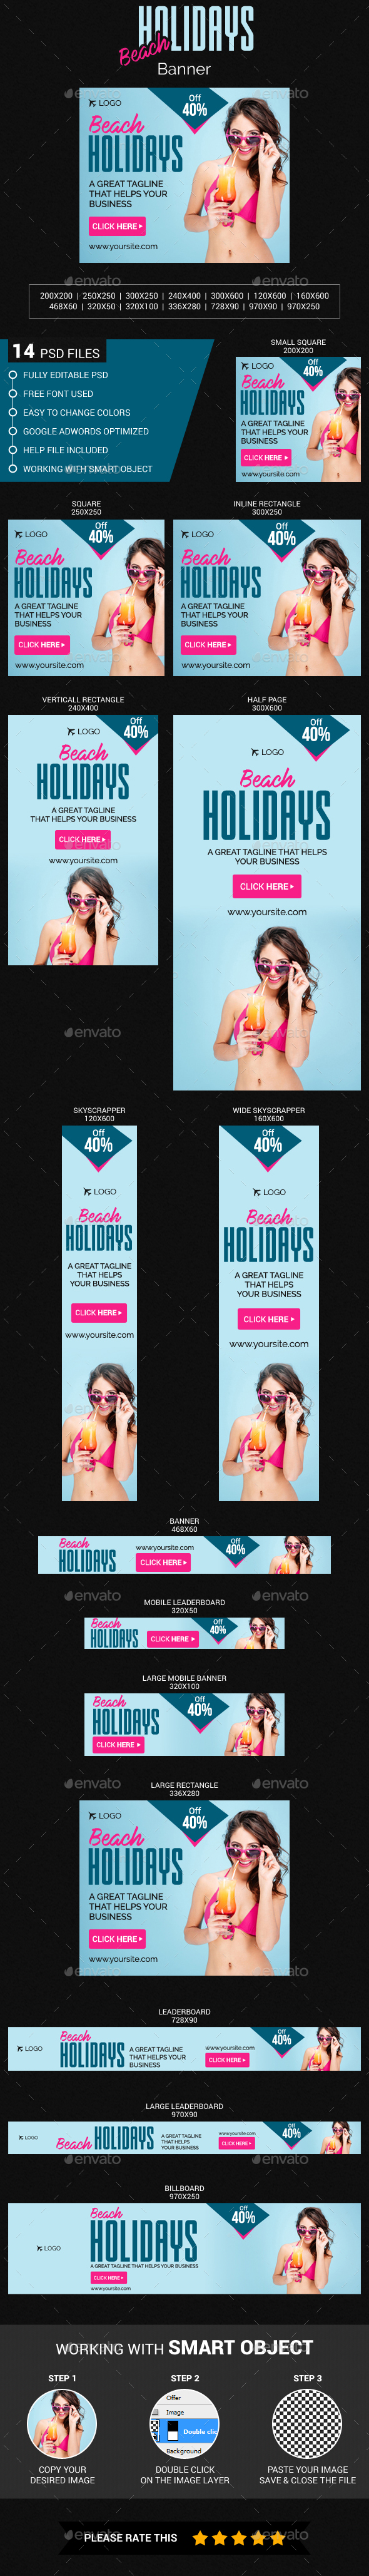 Beach Holidays Banner - Banners & Ads Web Elements